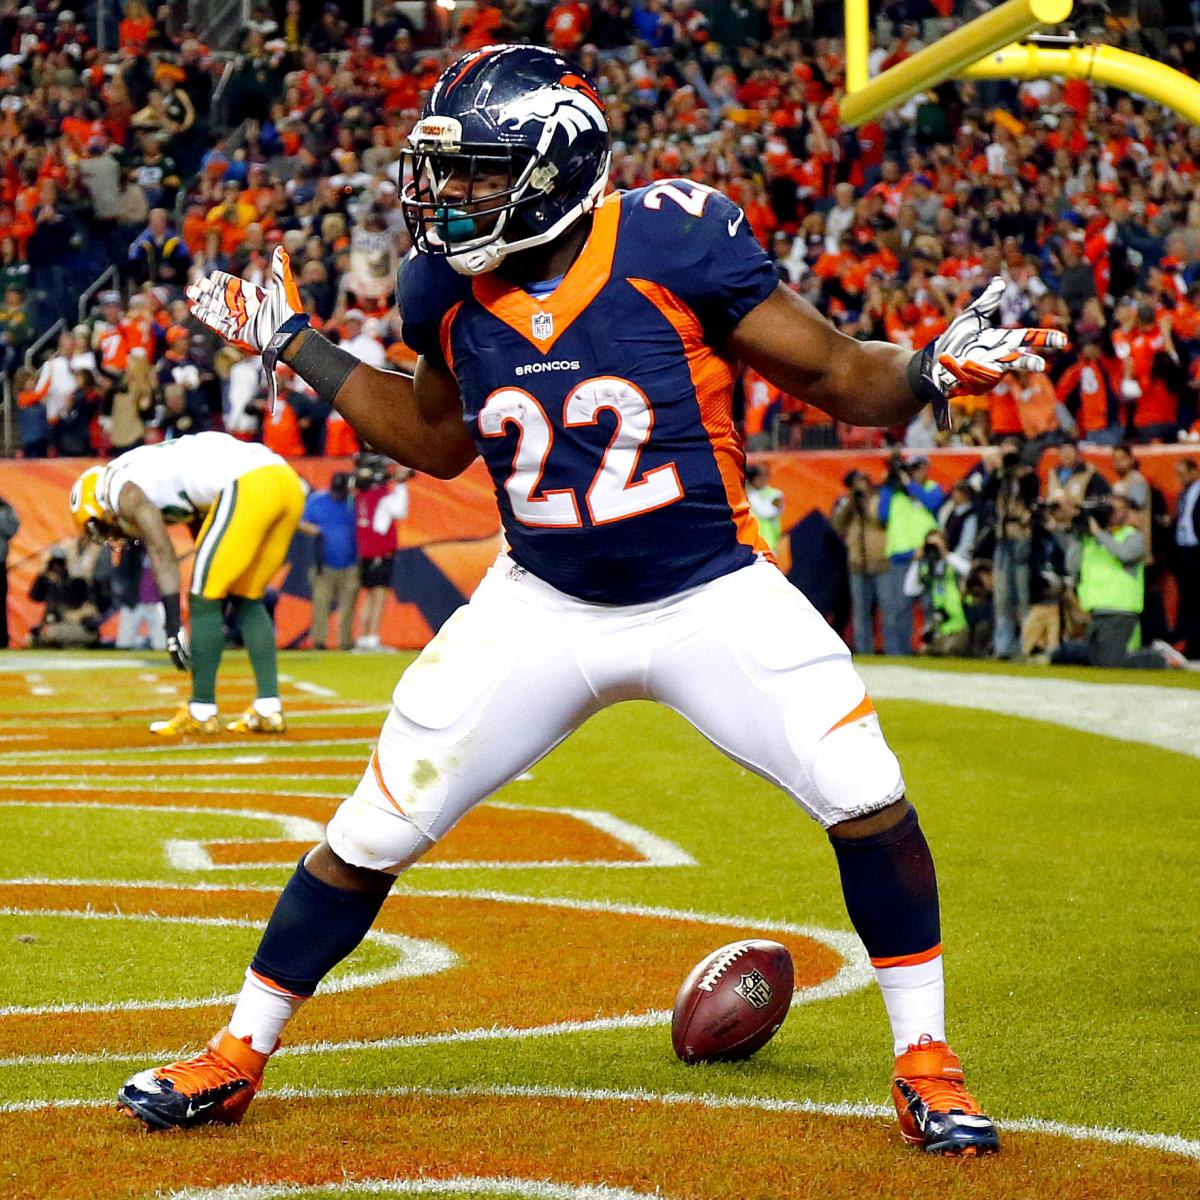 Packers Vs. Broncos: Score And Twitter Reaction For Sunday